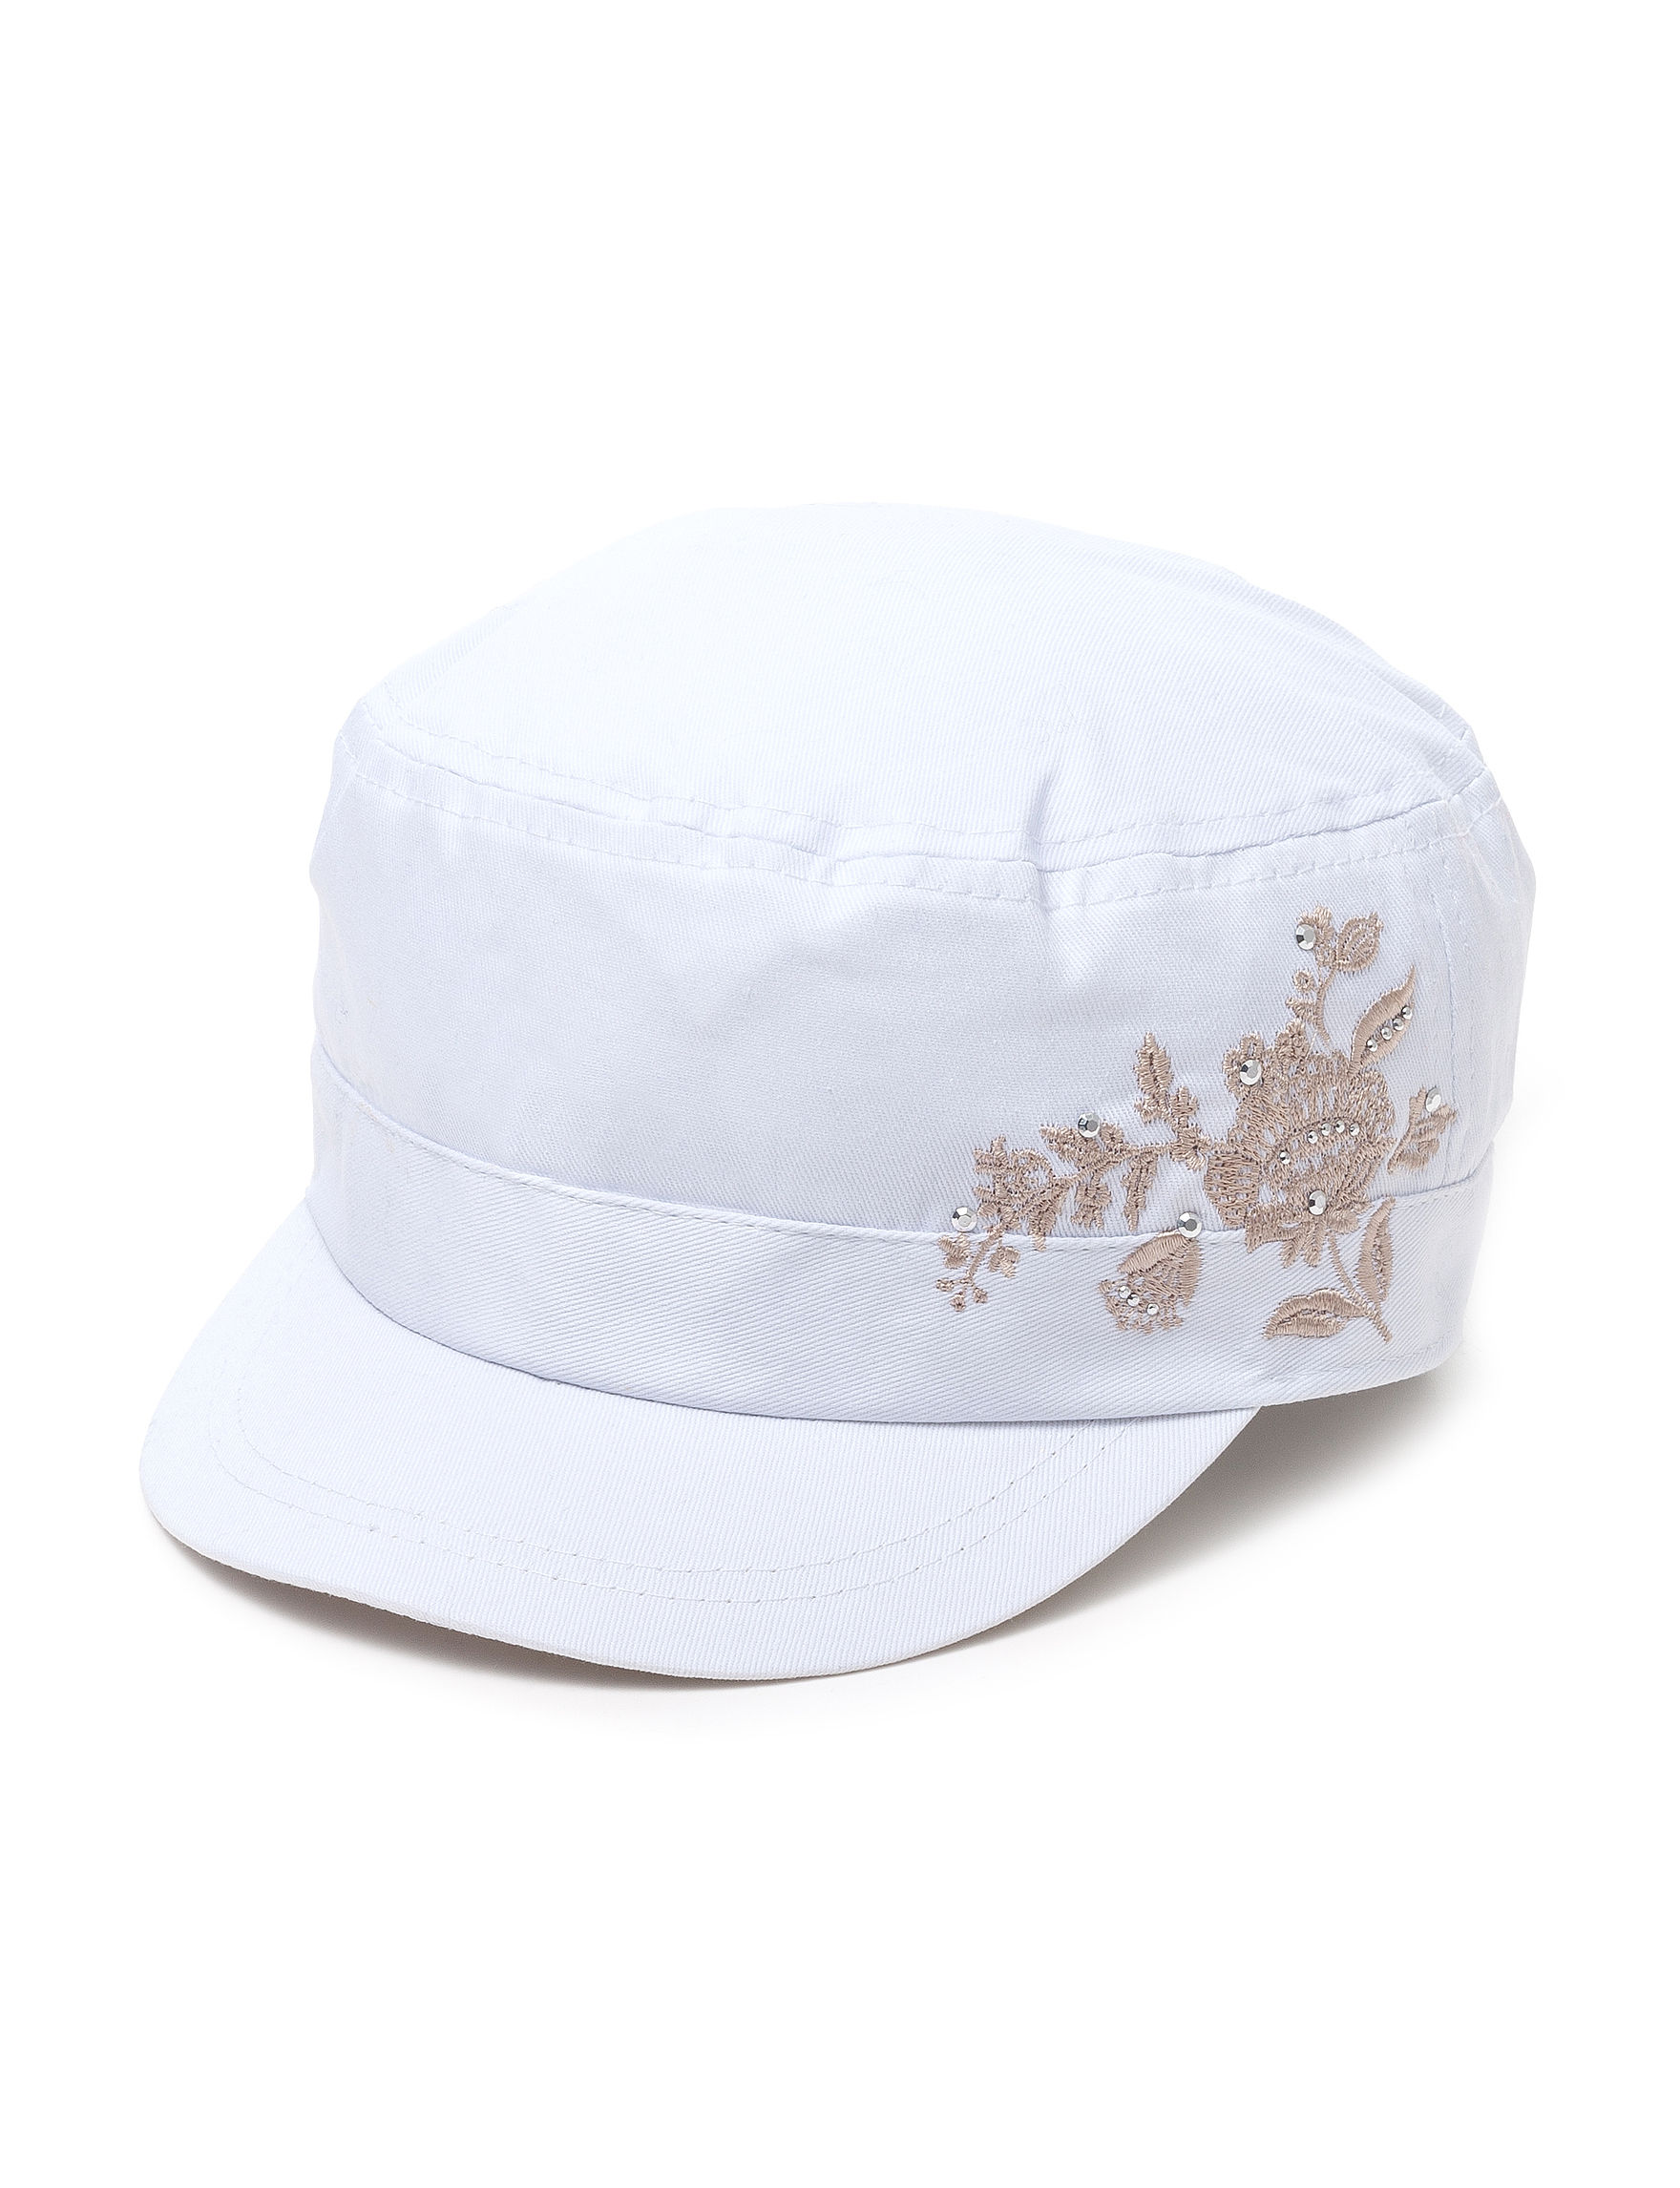 Columbino White Hats & Headwear